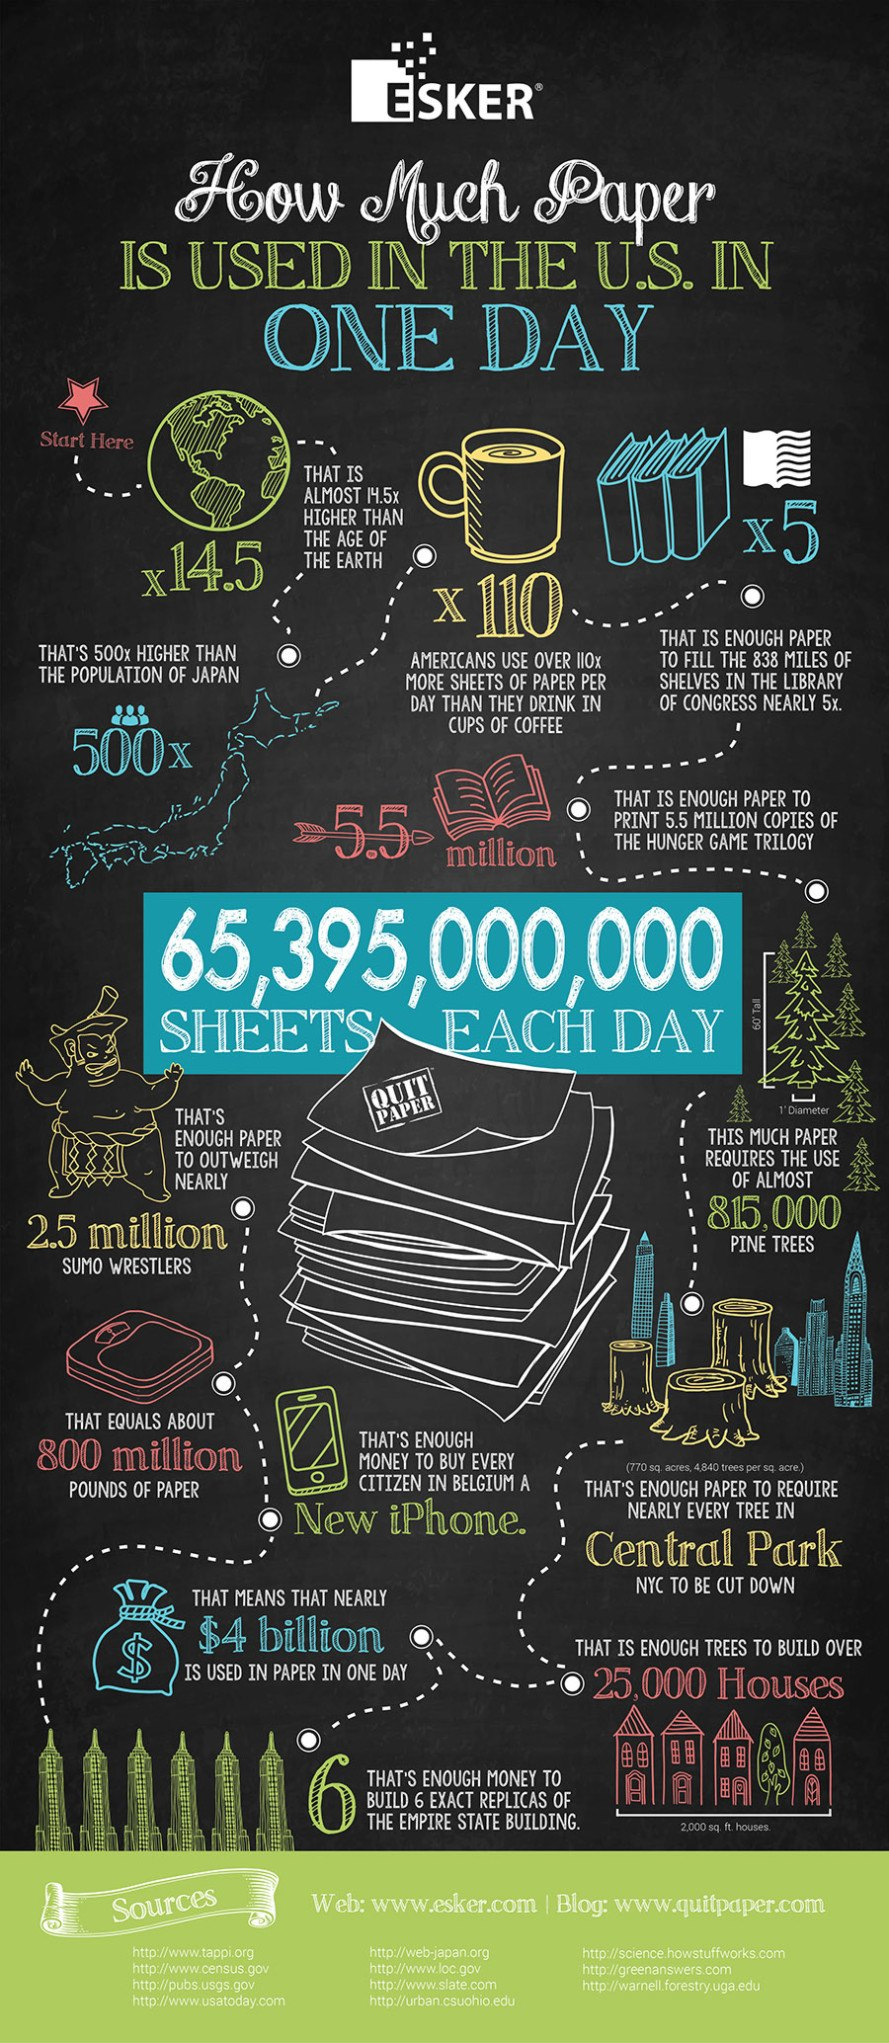 infographic, paper use, paper waste, how much paper do we use, how much paper do we use every day, paper alternatives, cutting down trees, cost of paper use, quit paper, reader submission